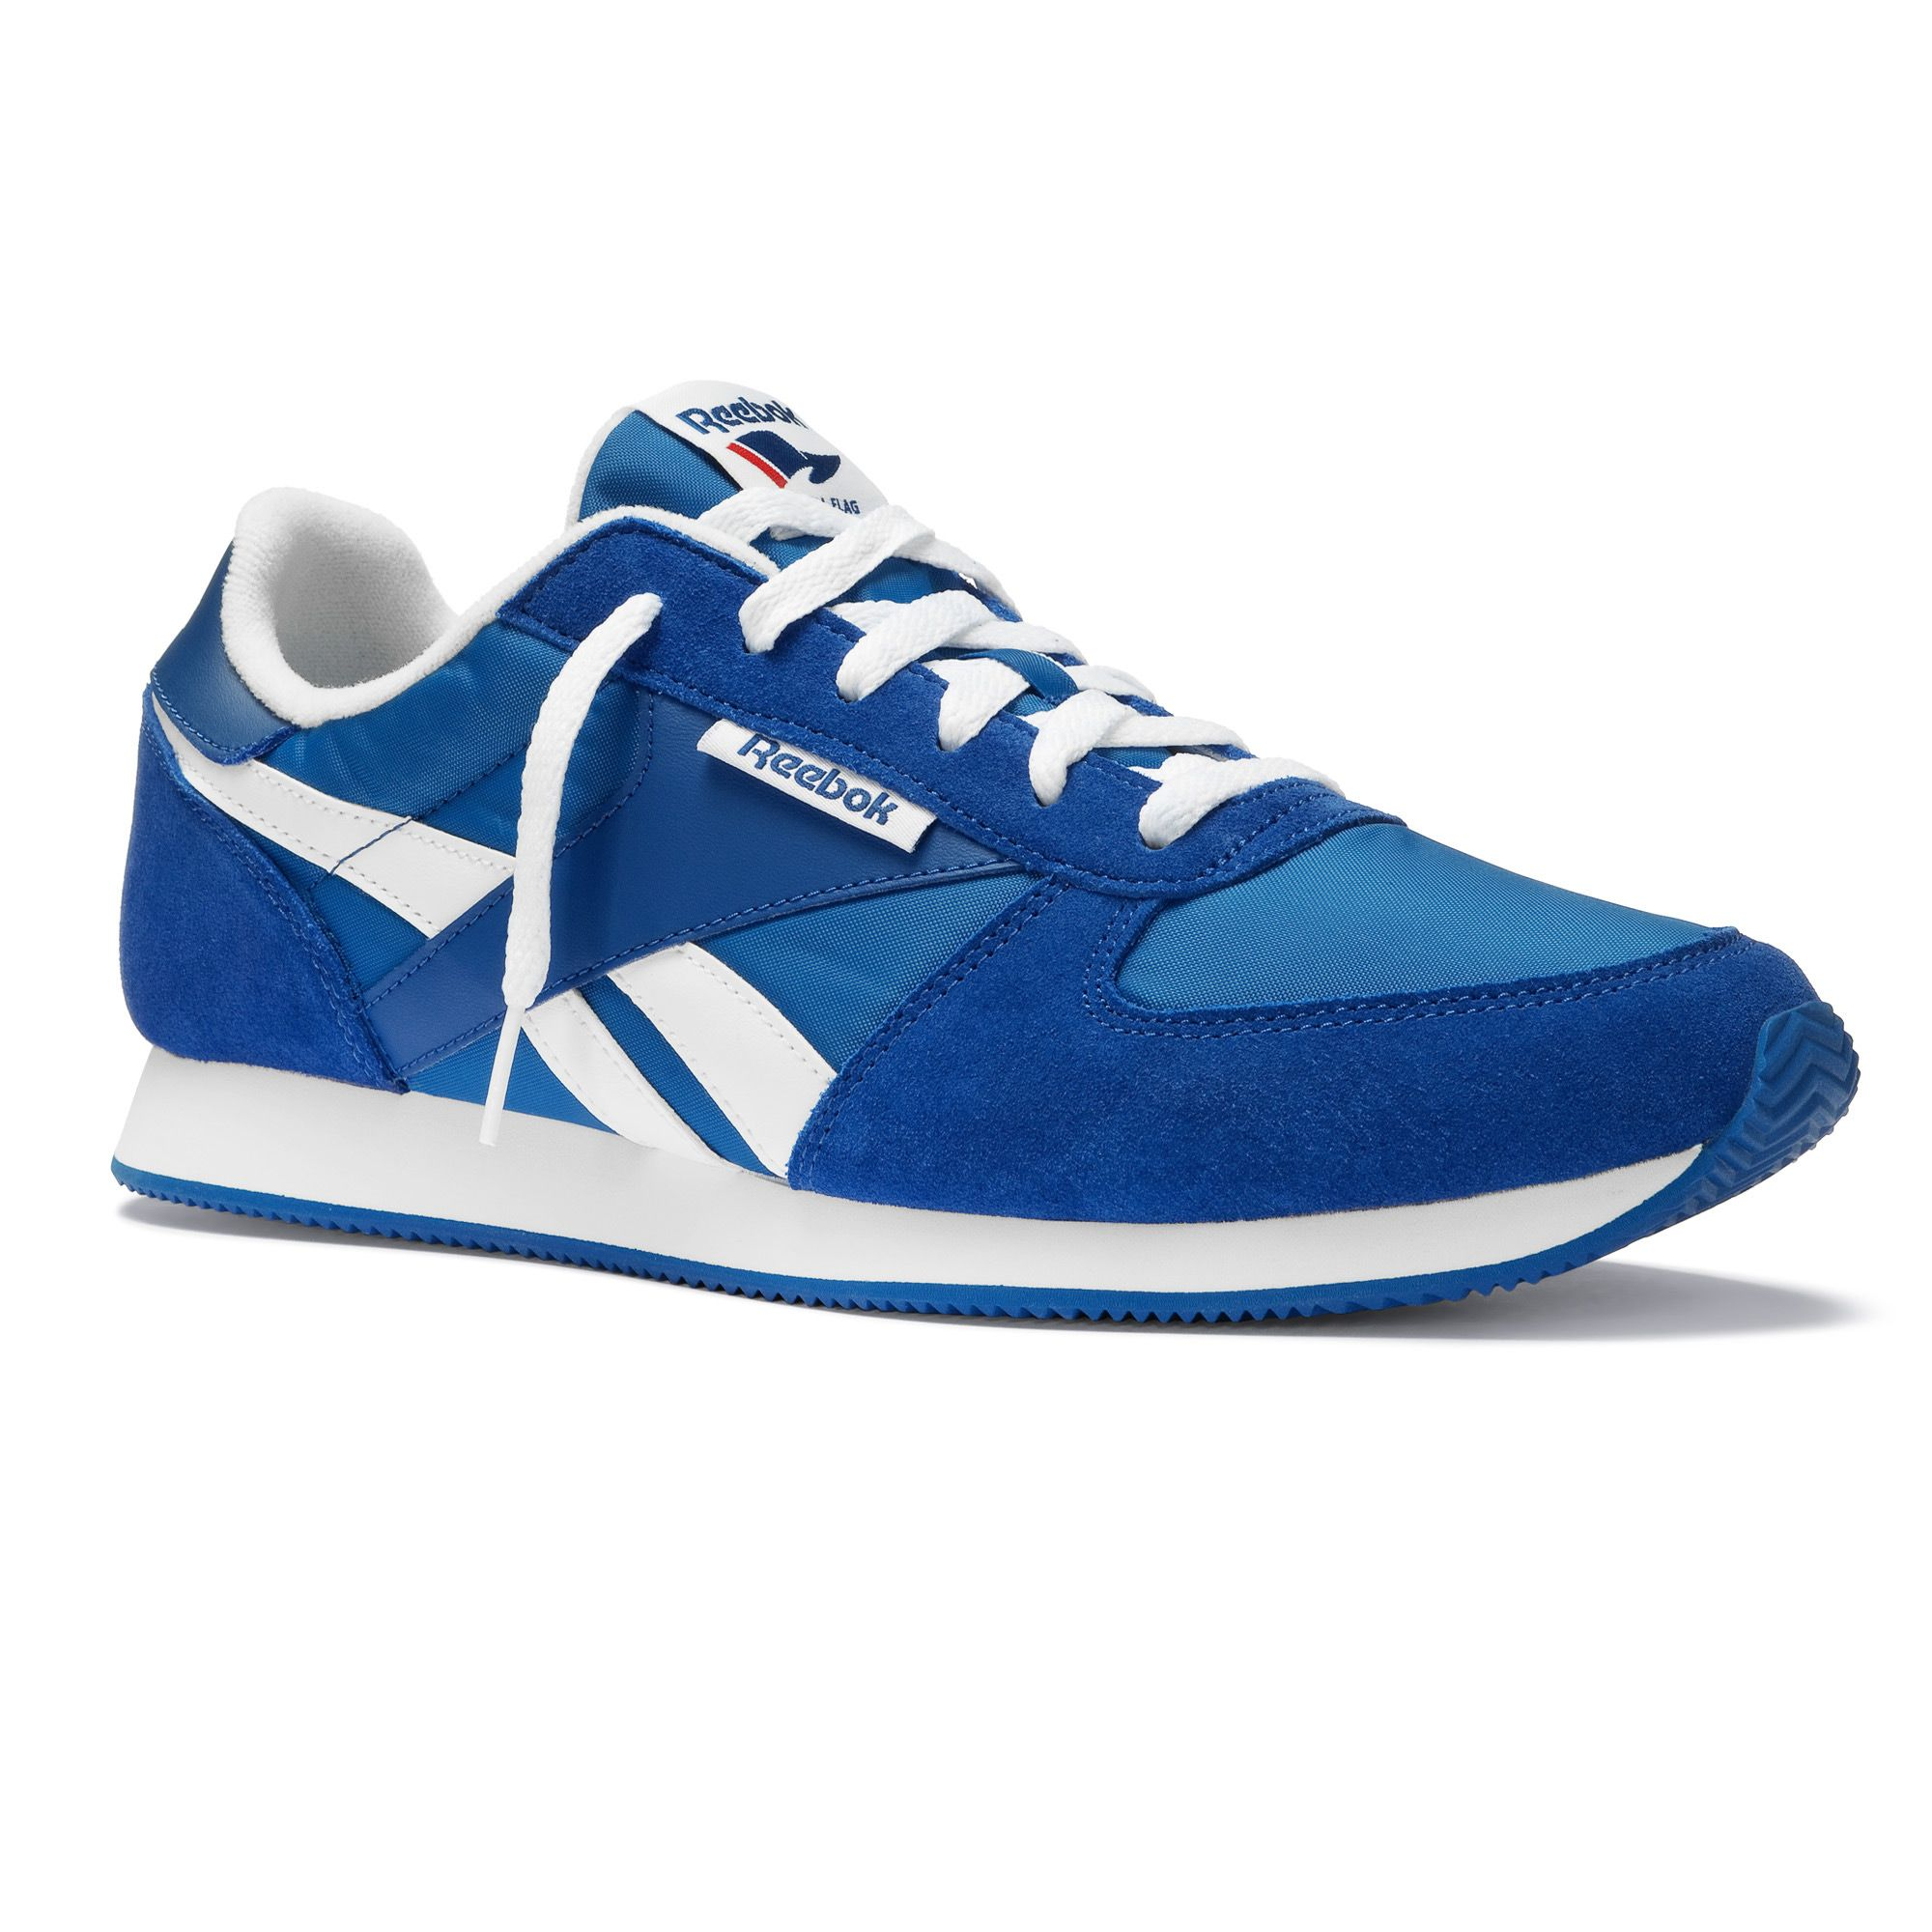 Blue Sportswear & Sports Shoes| Reebok Official Shop